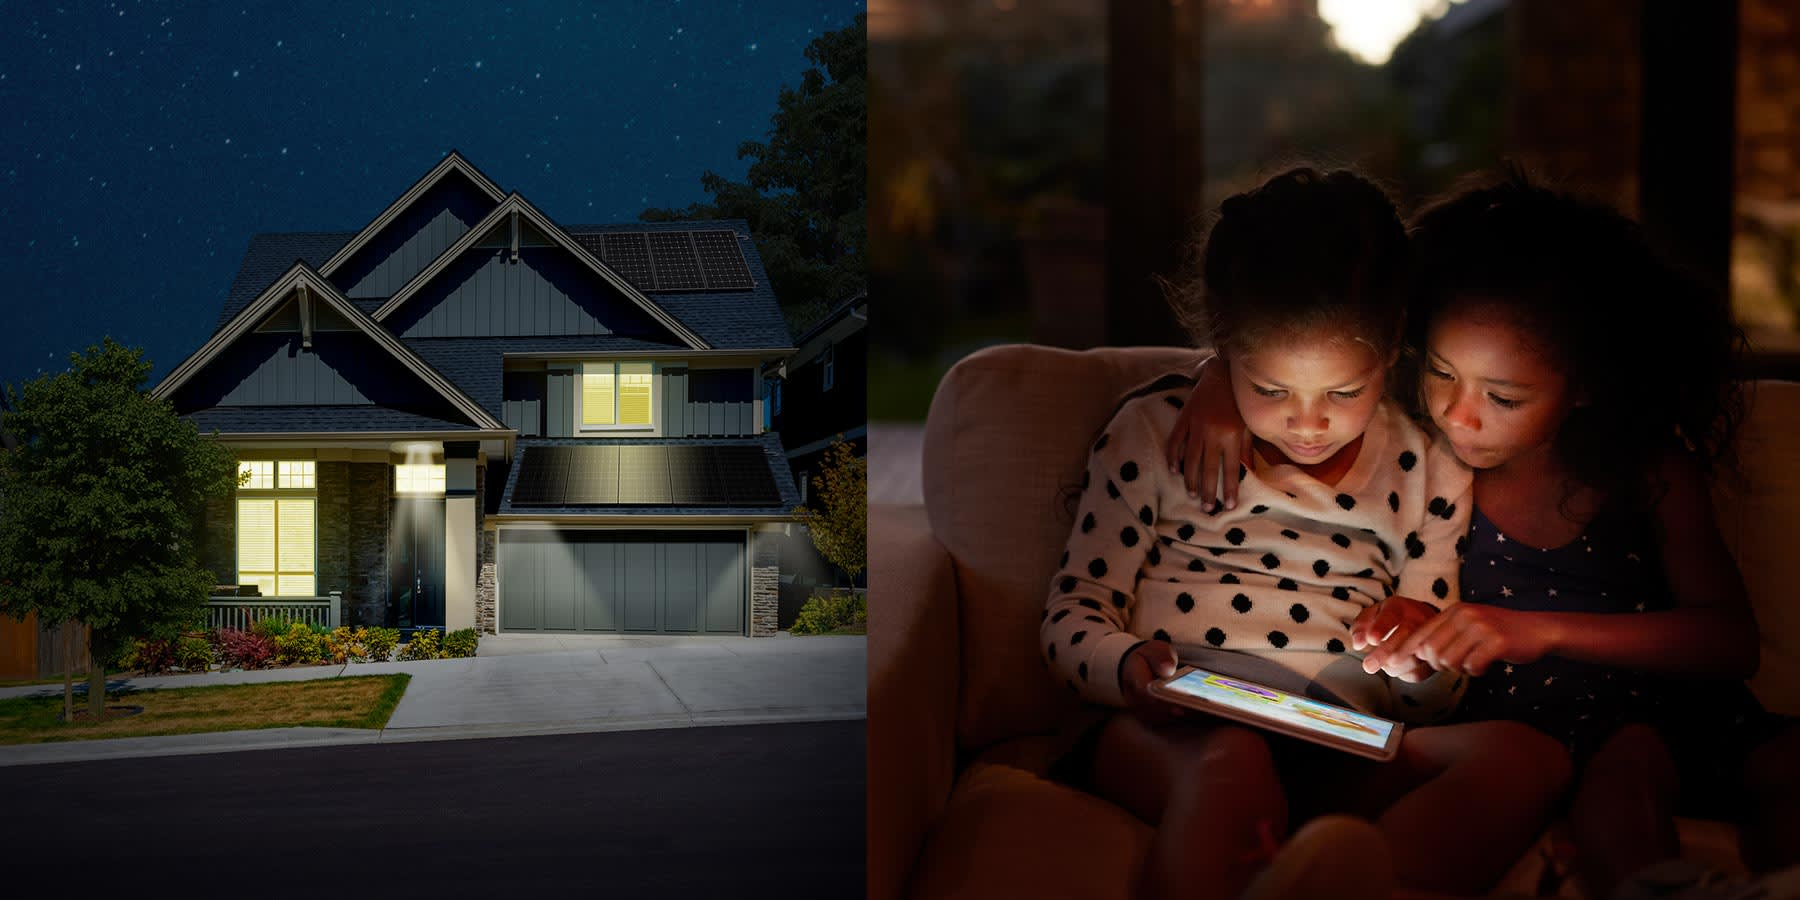 Two children on a laptop a dusk split with an outside view of a house with the lights on and solar panels on the roof.